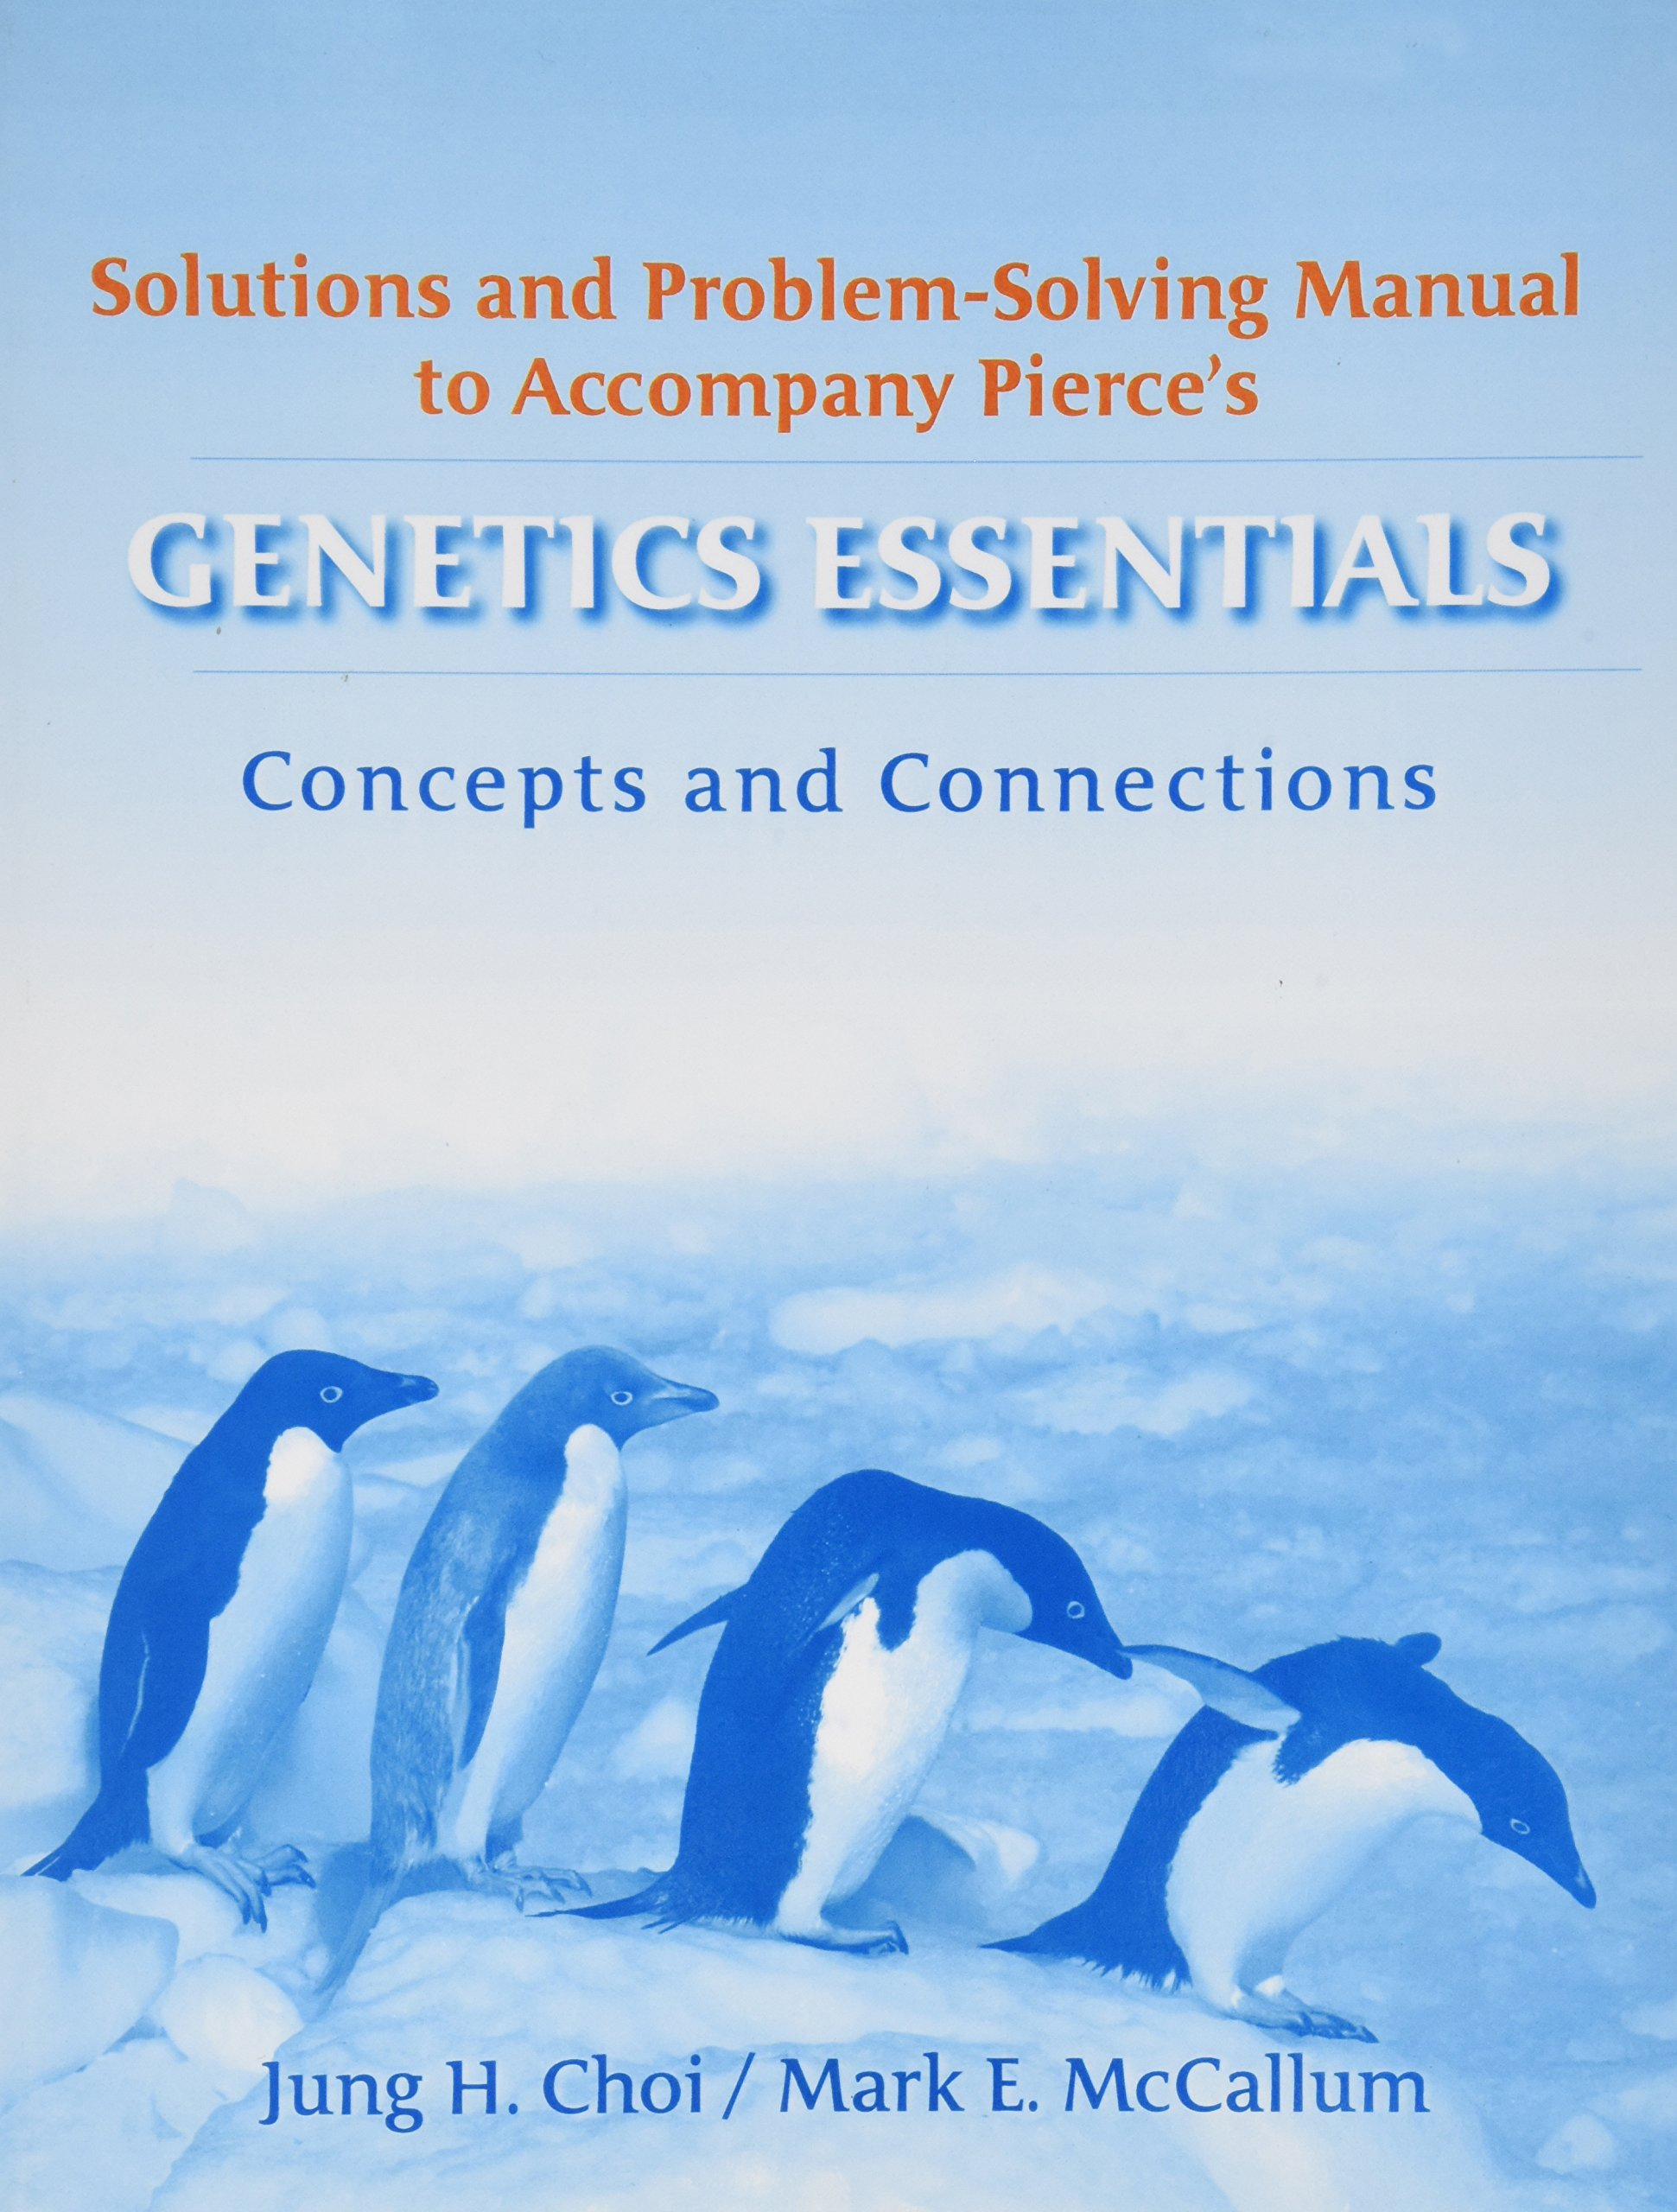 Buy Genetics Essentials: Concepts and Connections + Solutions and Problem  Solving Manual Book Online at Low Prices in India | Genetics Essentials:  Concepts ...